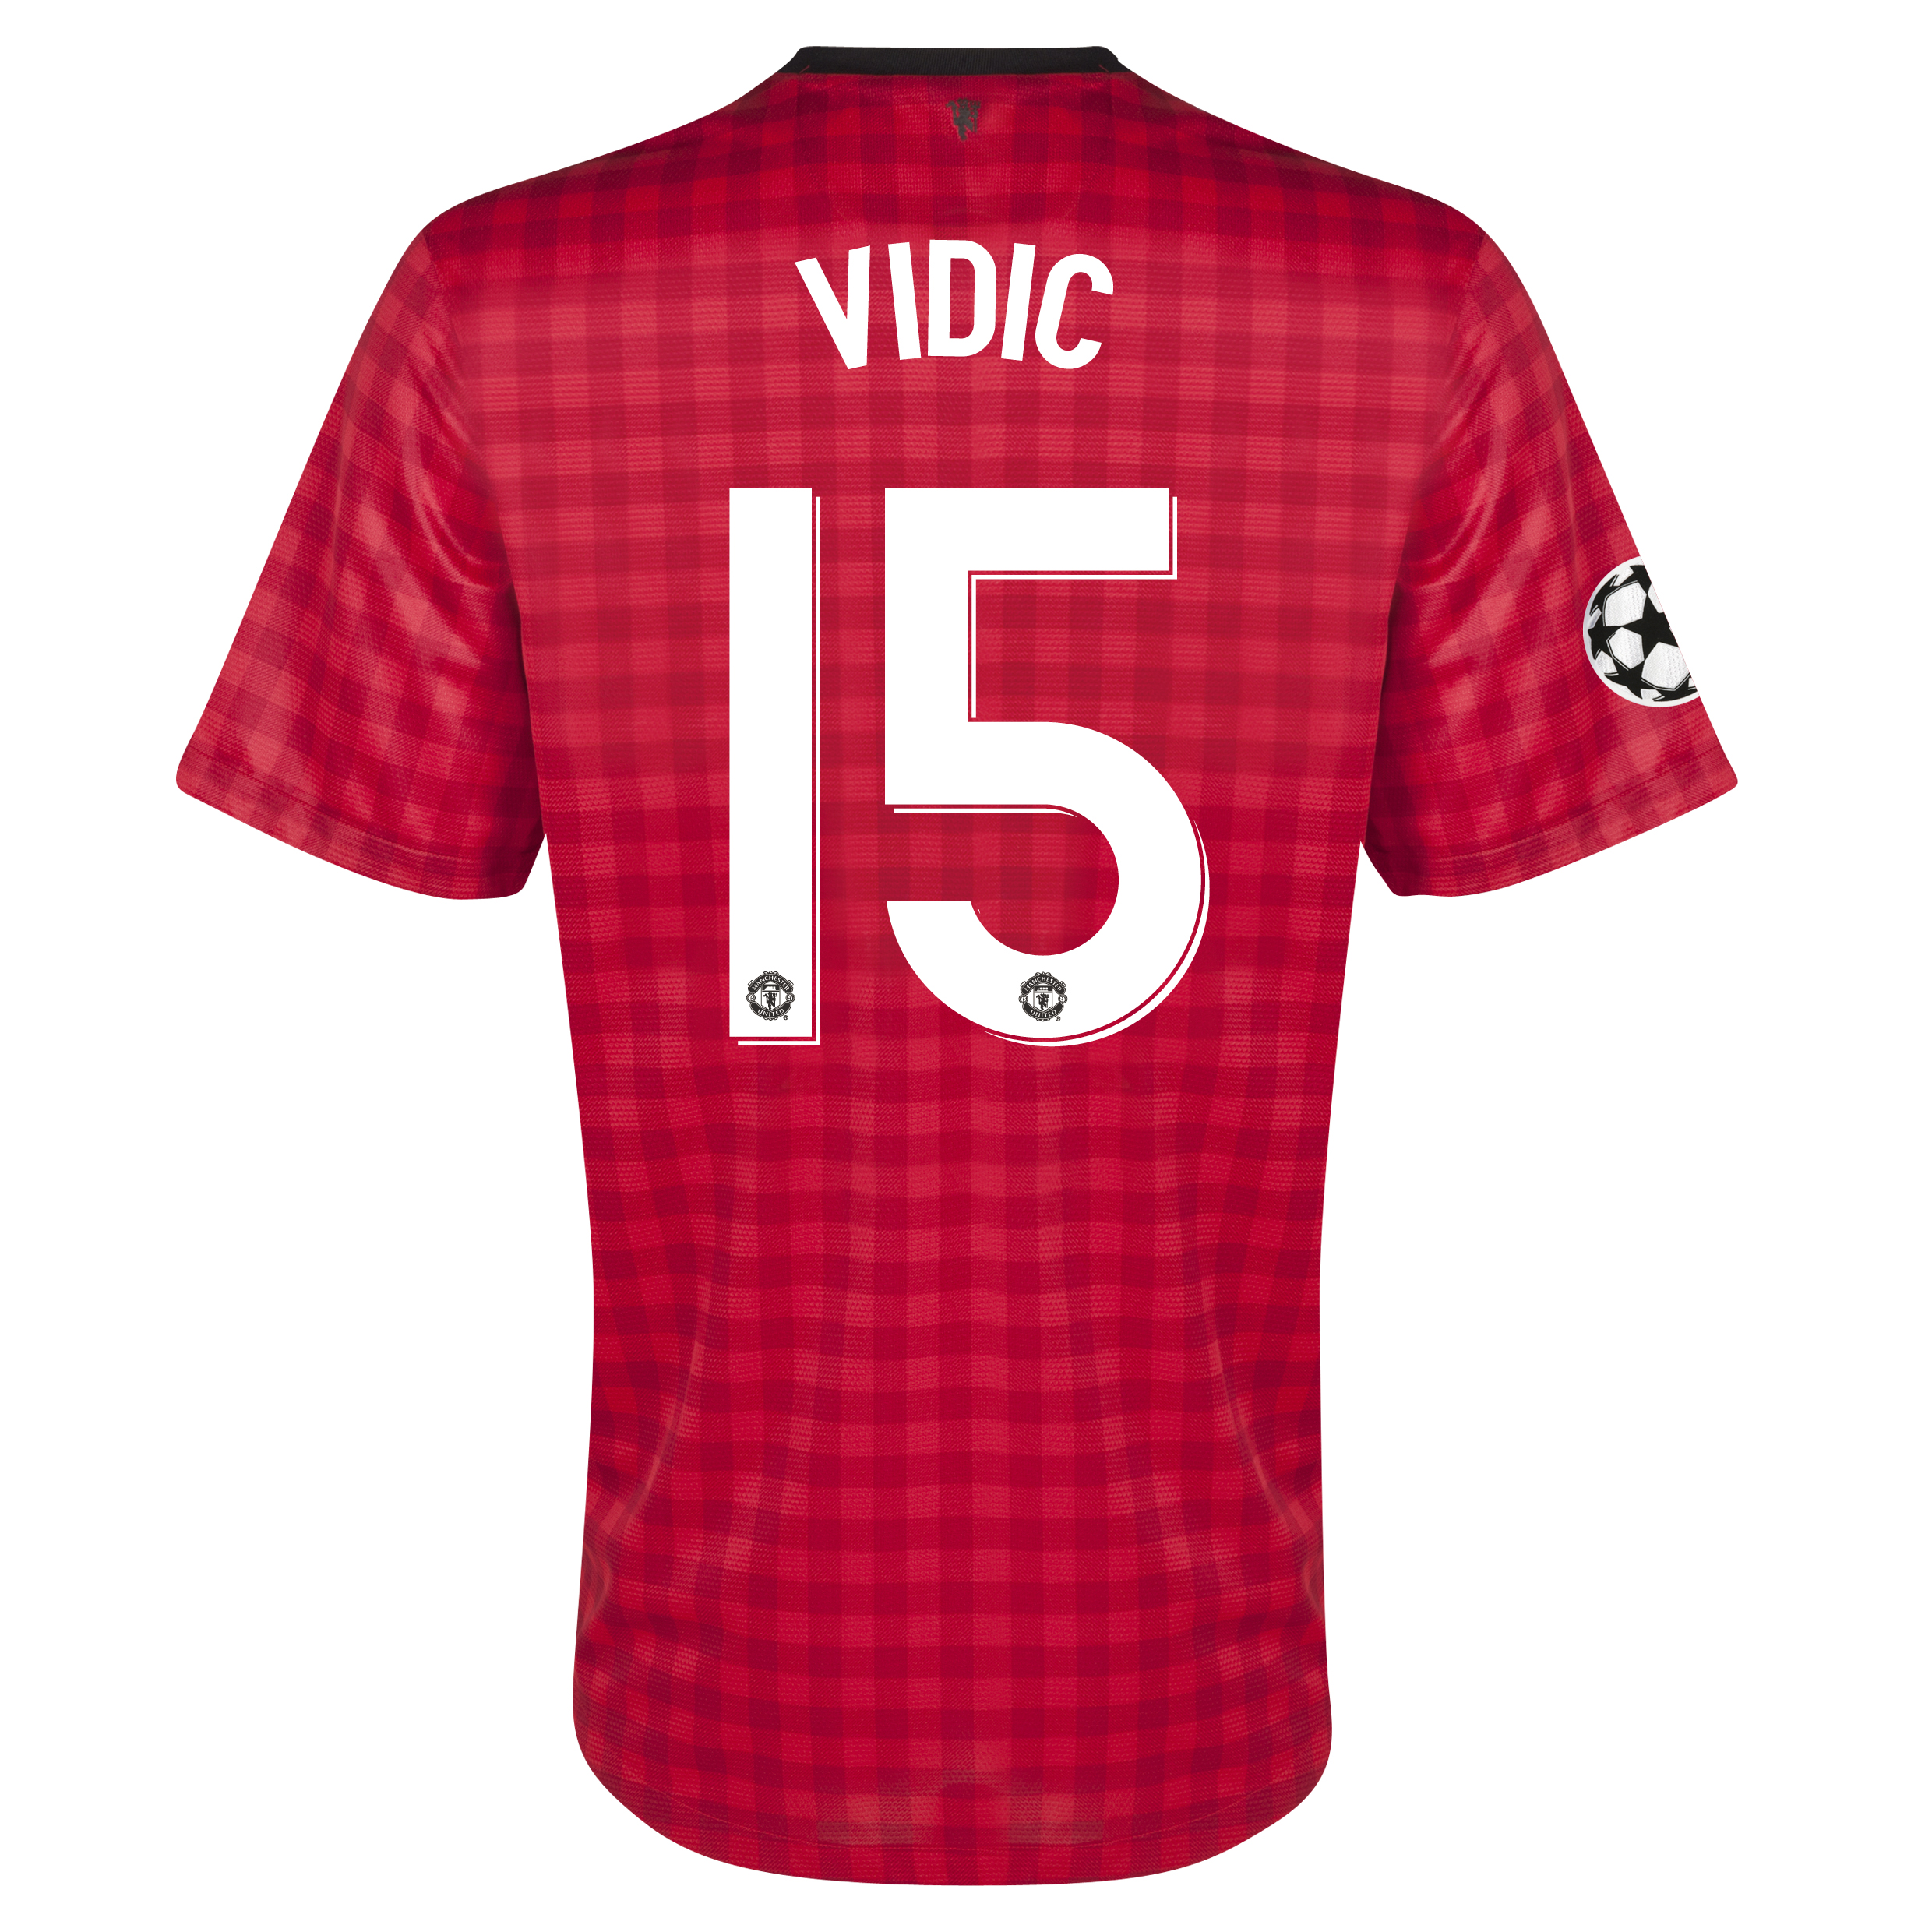 Manchester United UEFA Champions League Home Shirt 2012/13 with Vidic 15 printing